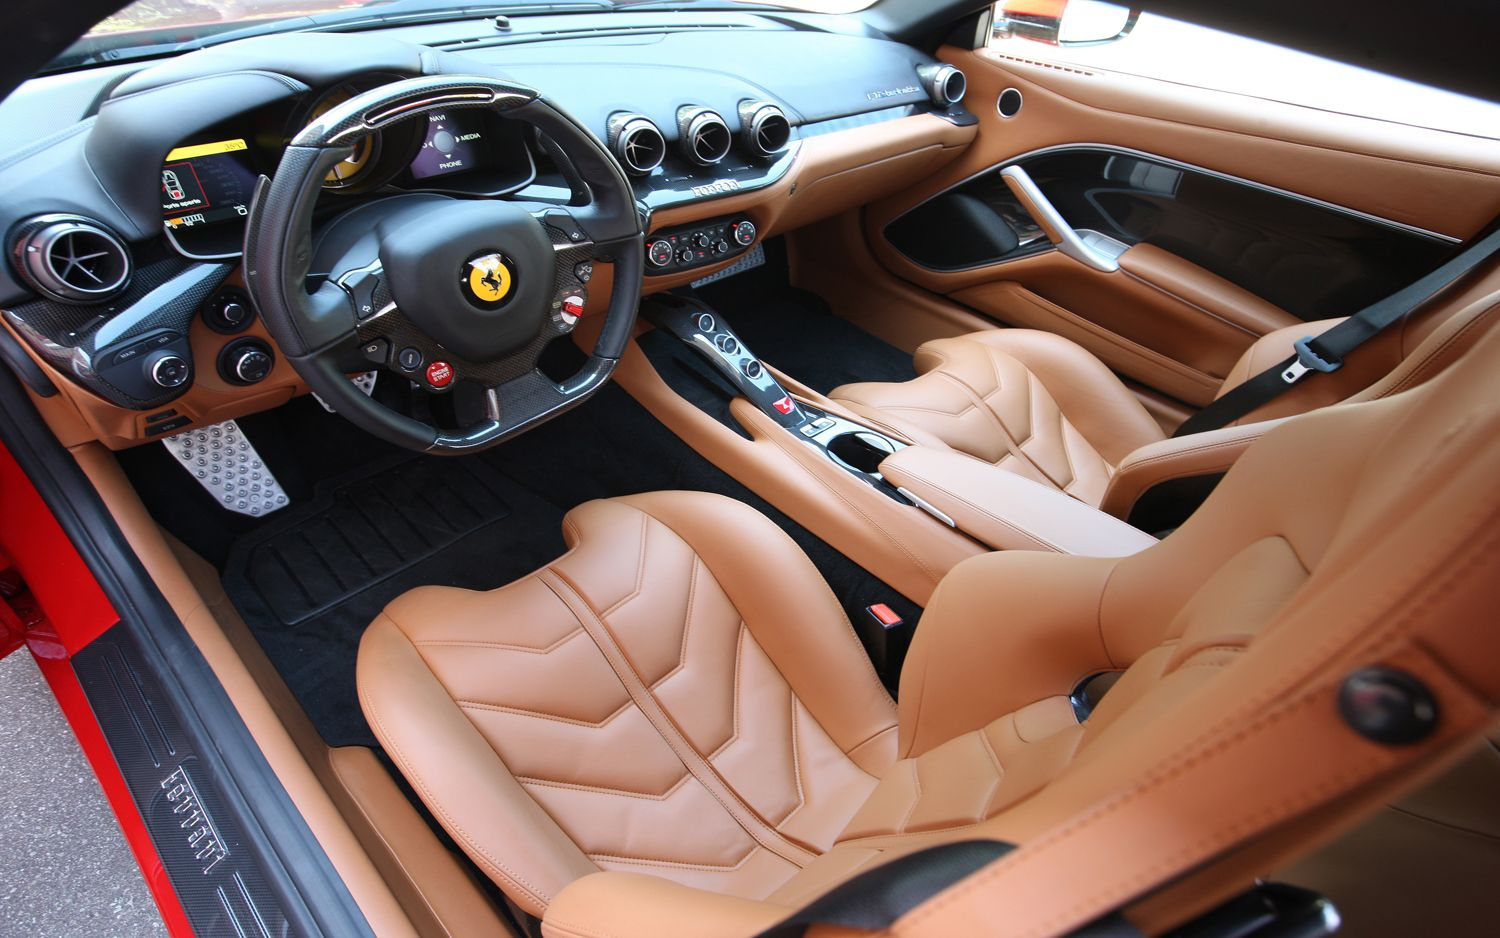 Ferrari F12 Berlinetta interior #2